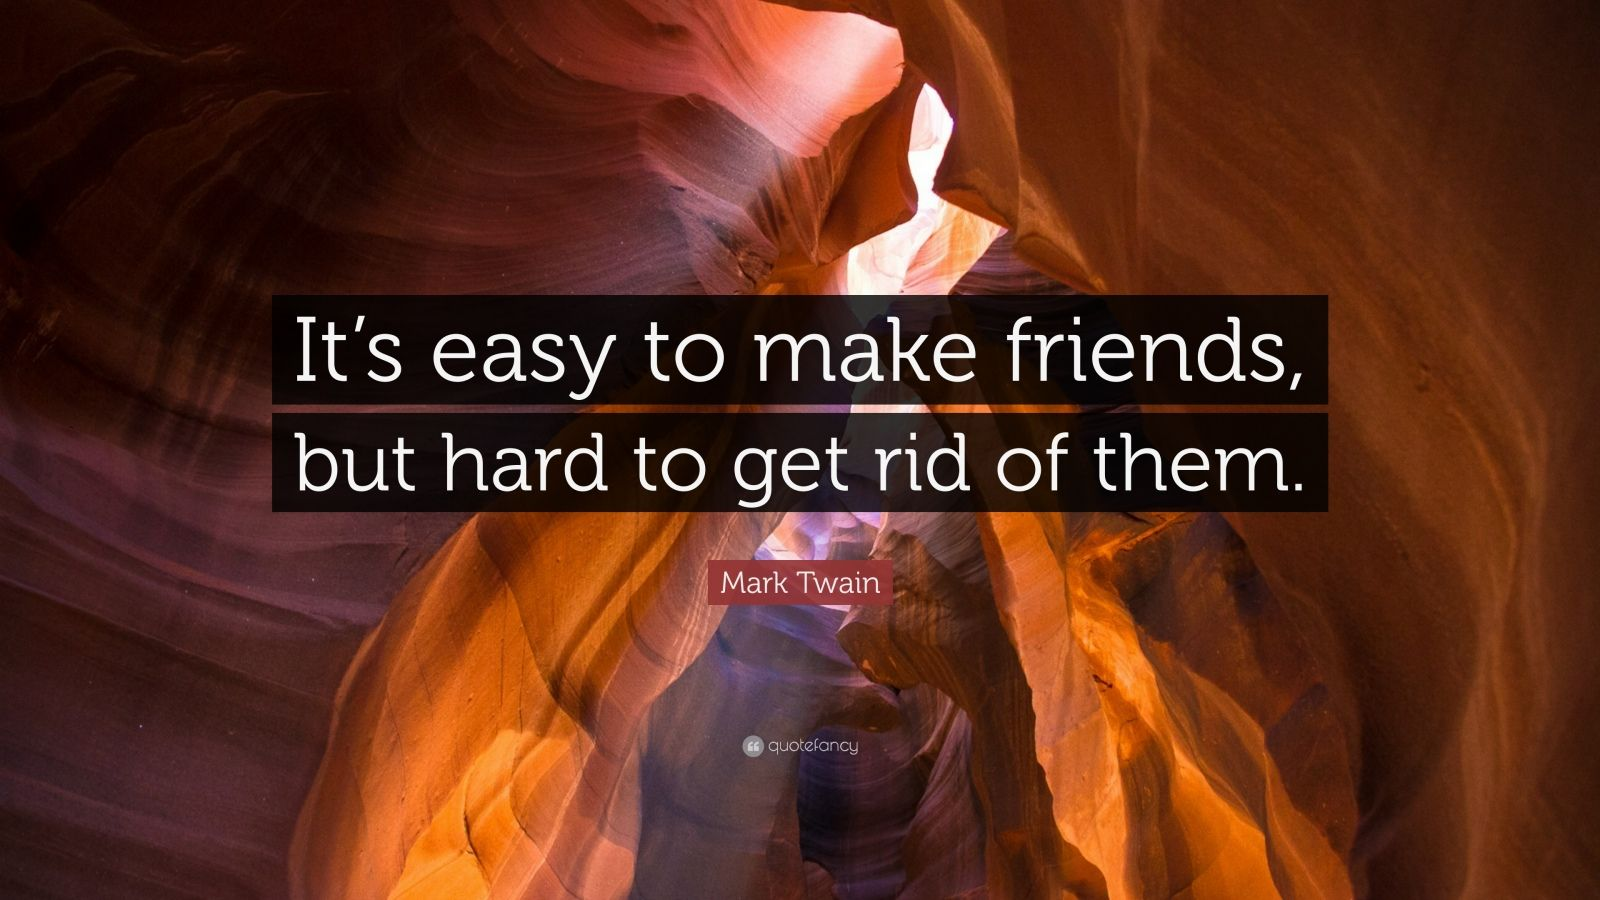 """Mark Twain Quote: """"It's easy to make friends, but hard to get rid of them."""""""